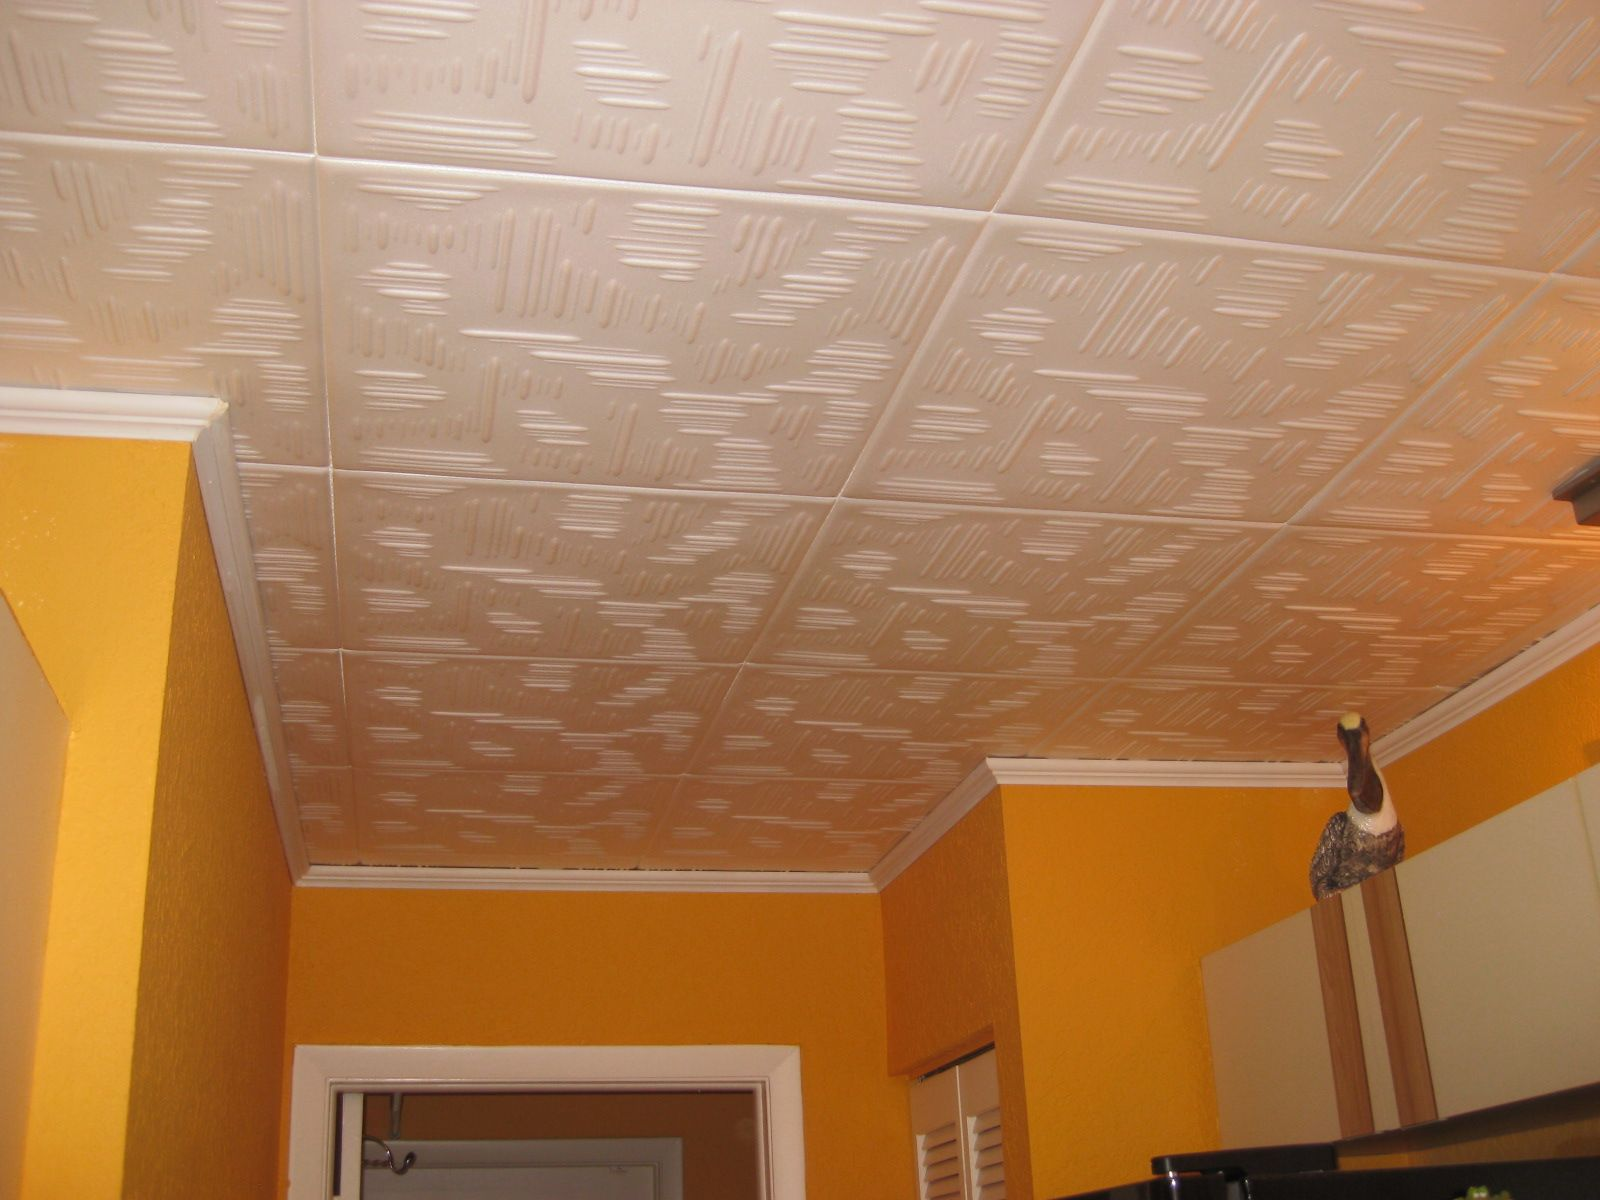 How to paint styrofoam ceiling tiles httpltgenthow how to paint styrofoam ceiling tiles httpltgent dailygadgetfo Images